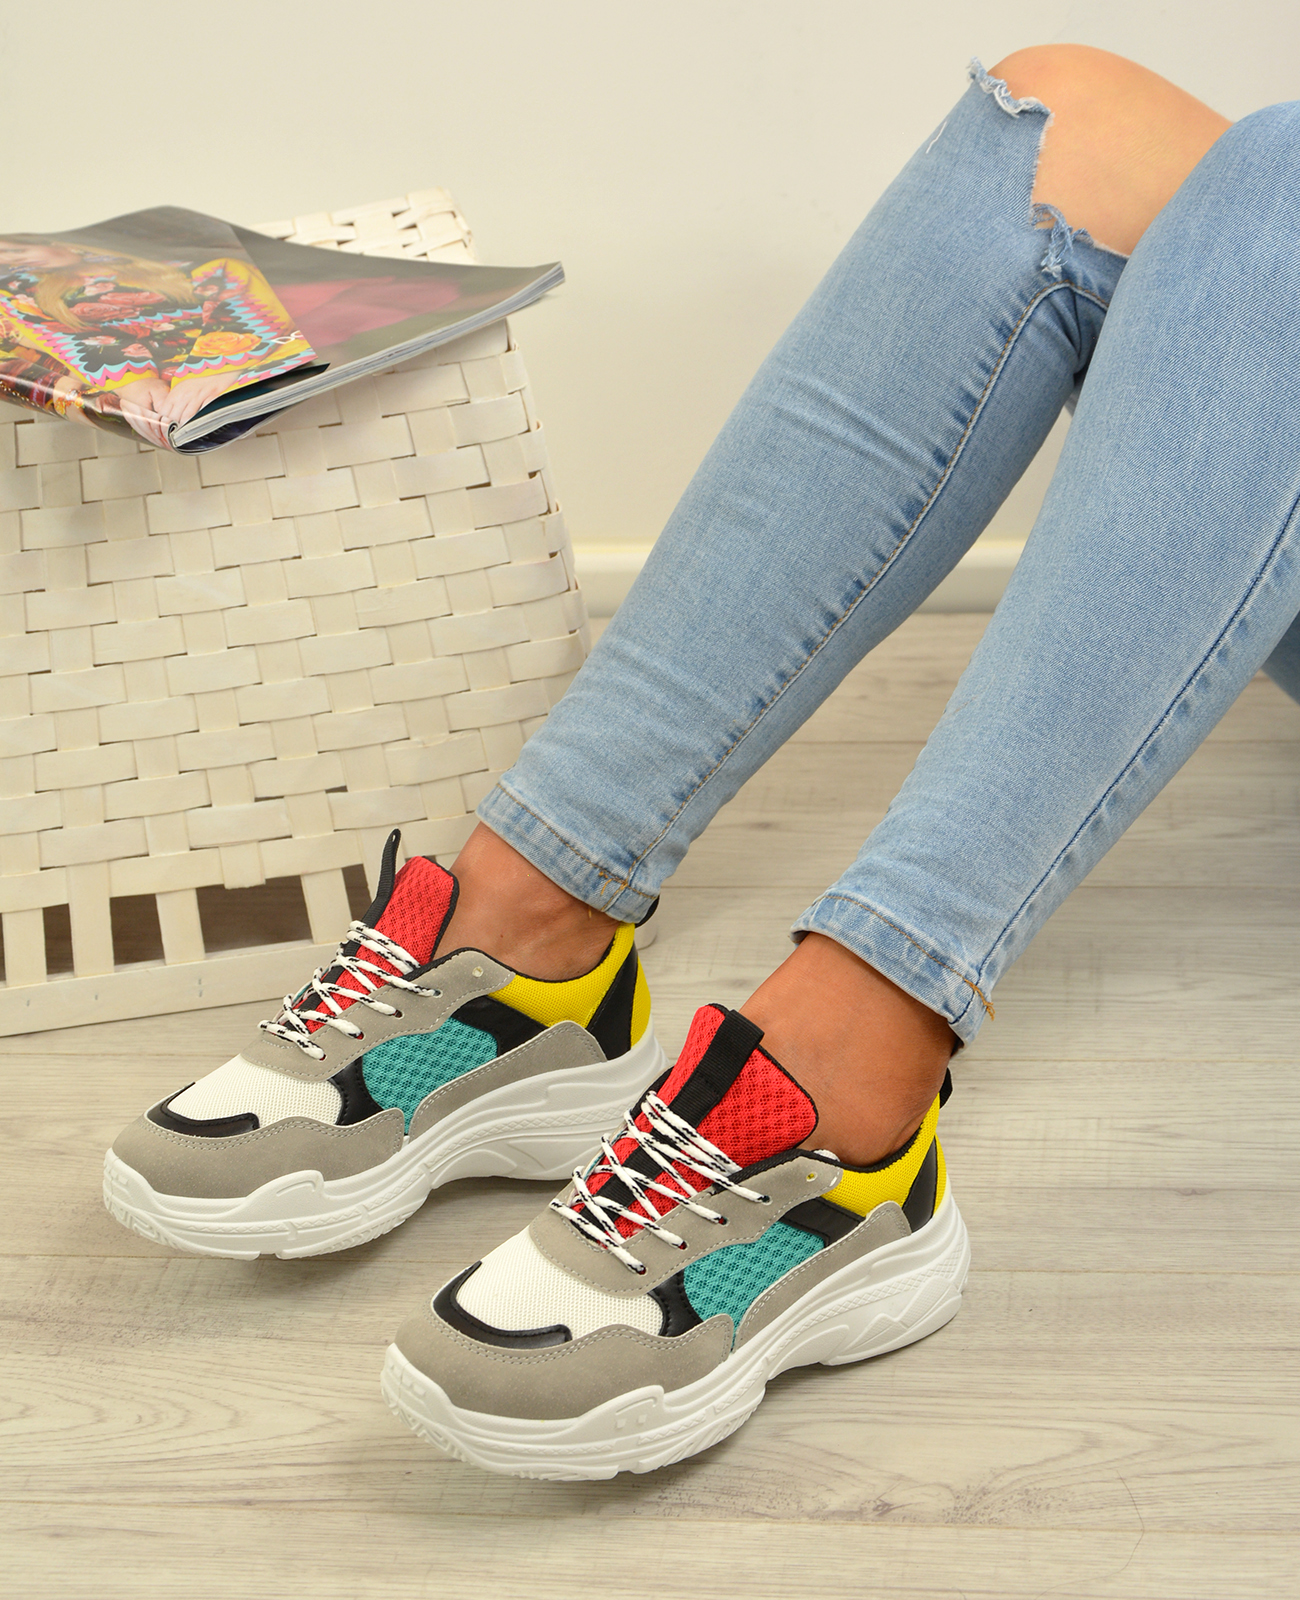 Femme-Running-Gym-Baskets-a-Lacets-Baskets-Tennis-Chaussures-Tailles-UK miniature 17